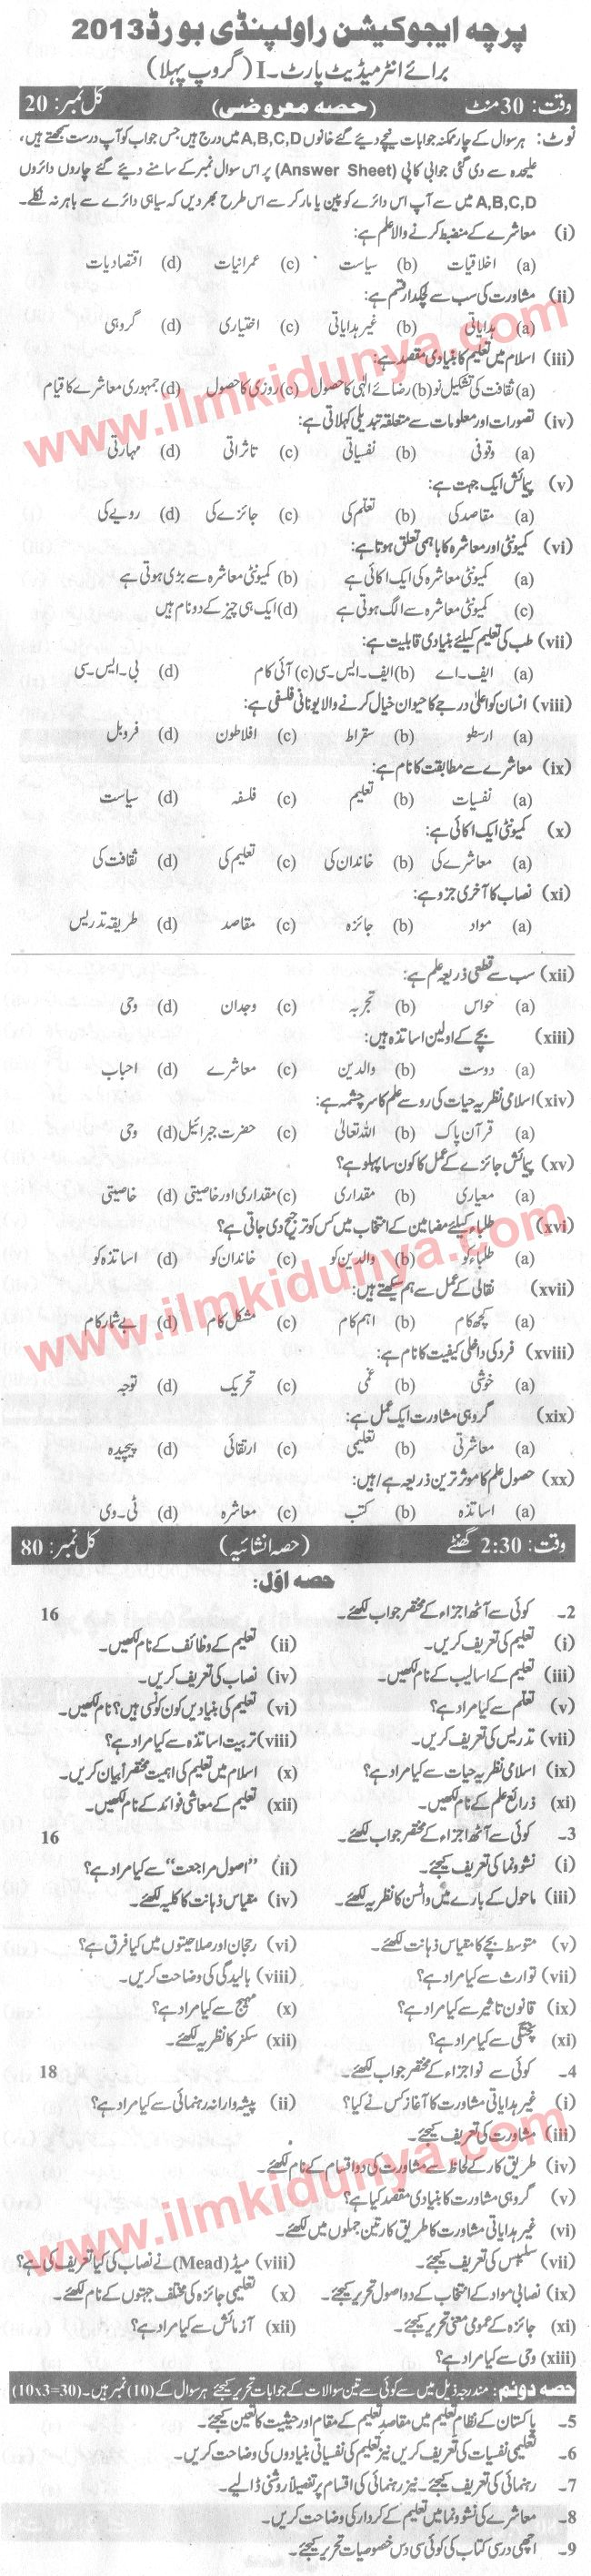 intermediate past papers rawalpindi board 9th class past exsms papers of rawalpindi board rawalpindi board of intermediate and secondary education rawalpindi 9th class past examination papers all compulsory , elective , arts group and science subjects examination paper for 9th class ssc part i old examination papers of 9th class ssc part 1.